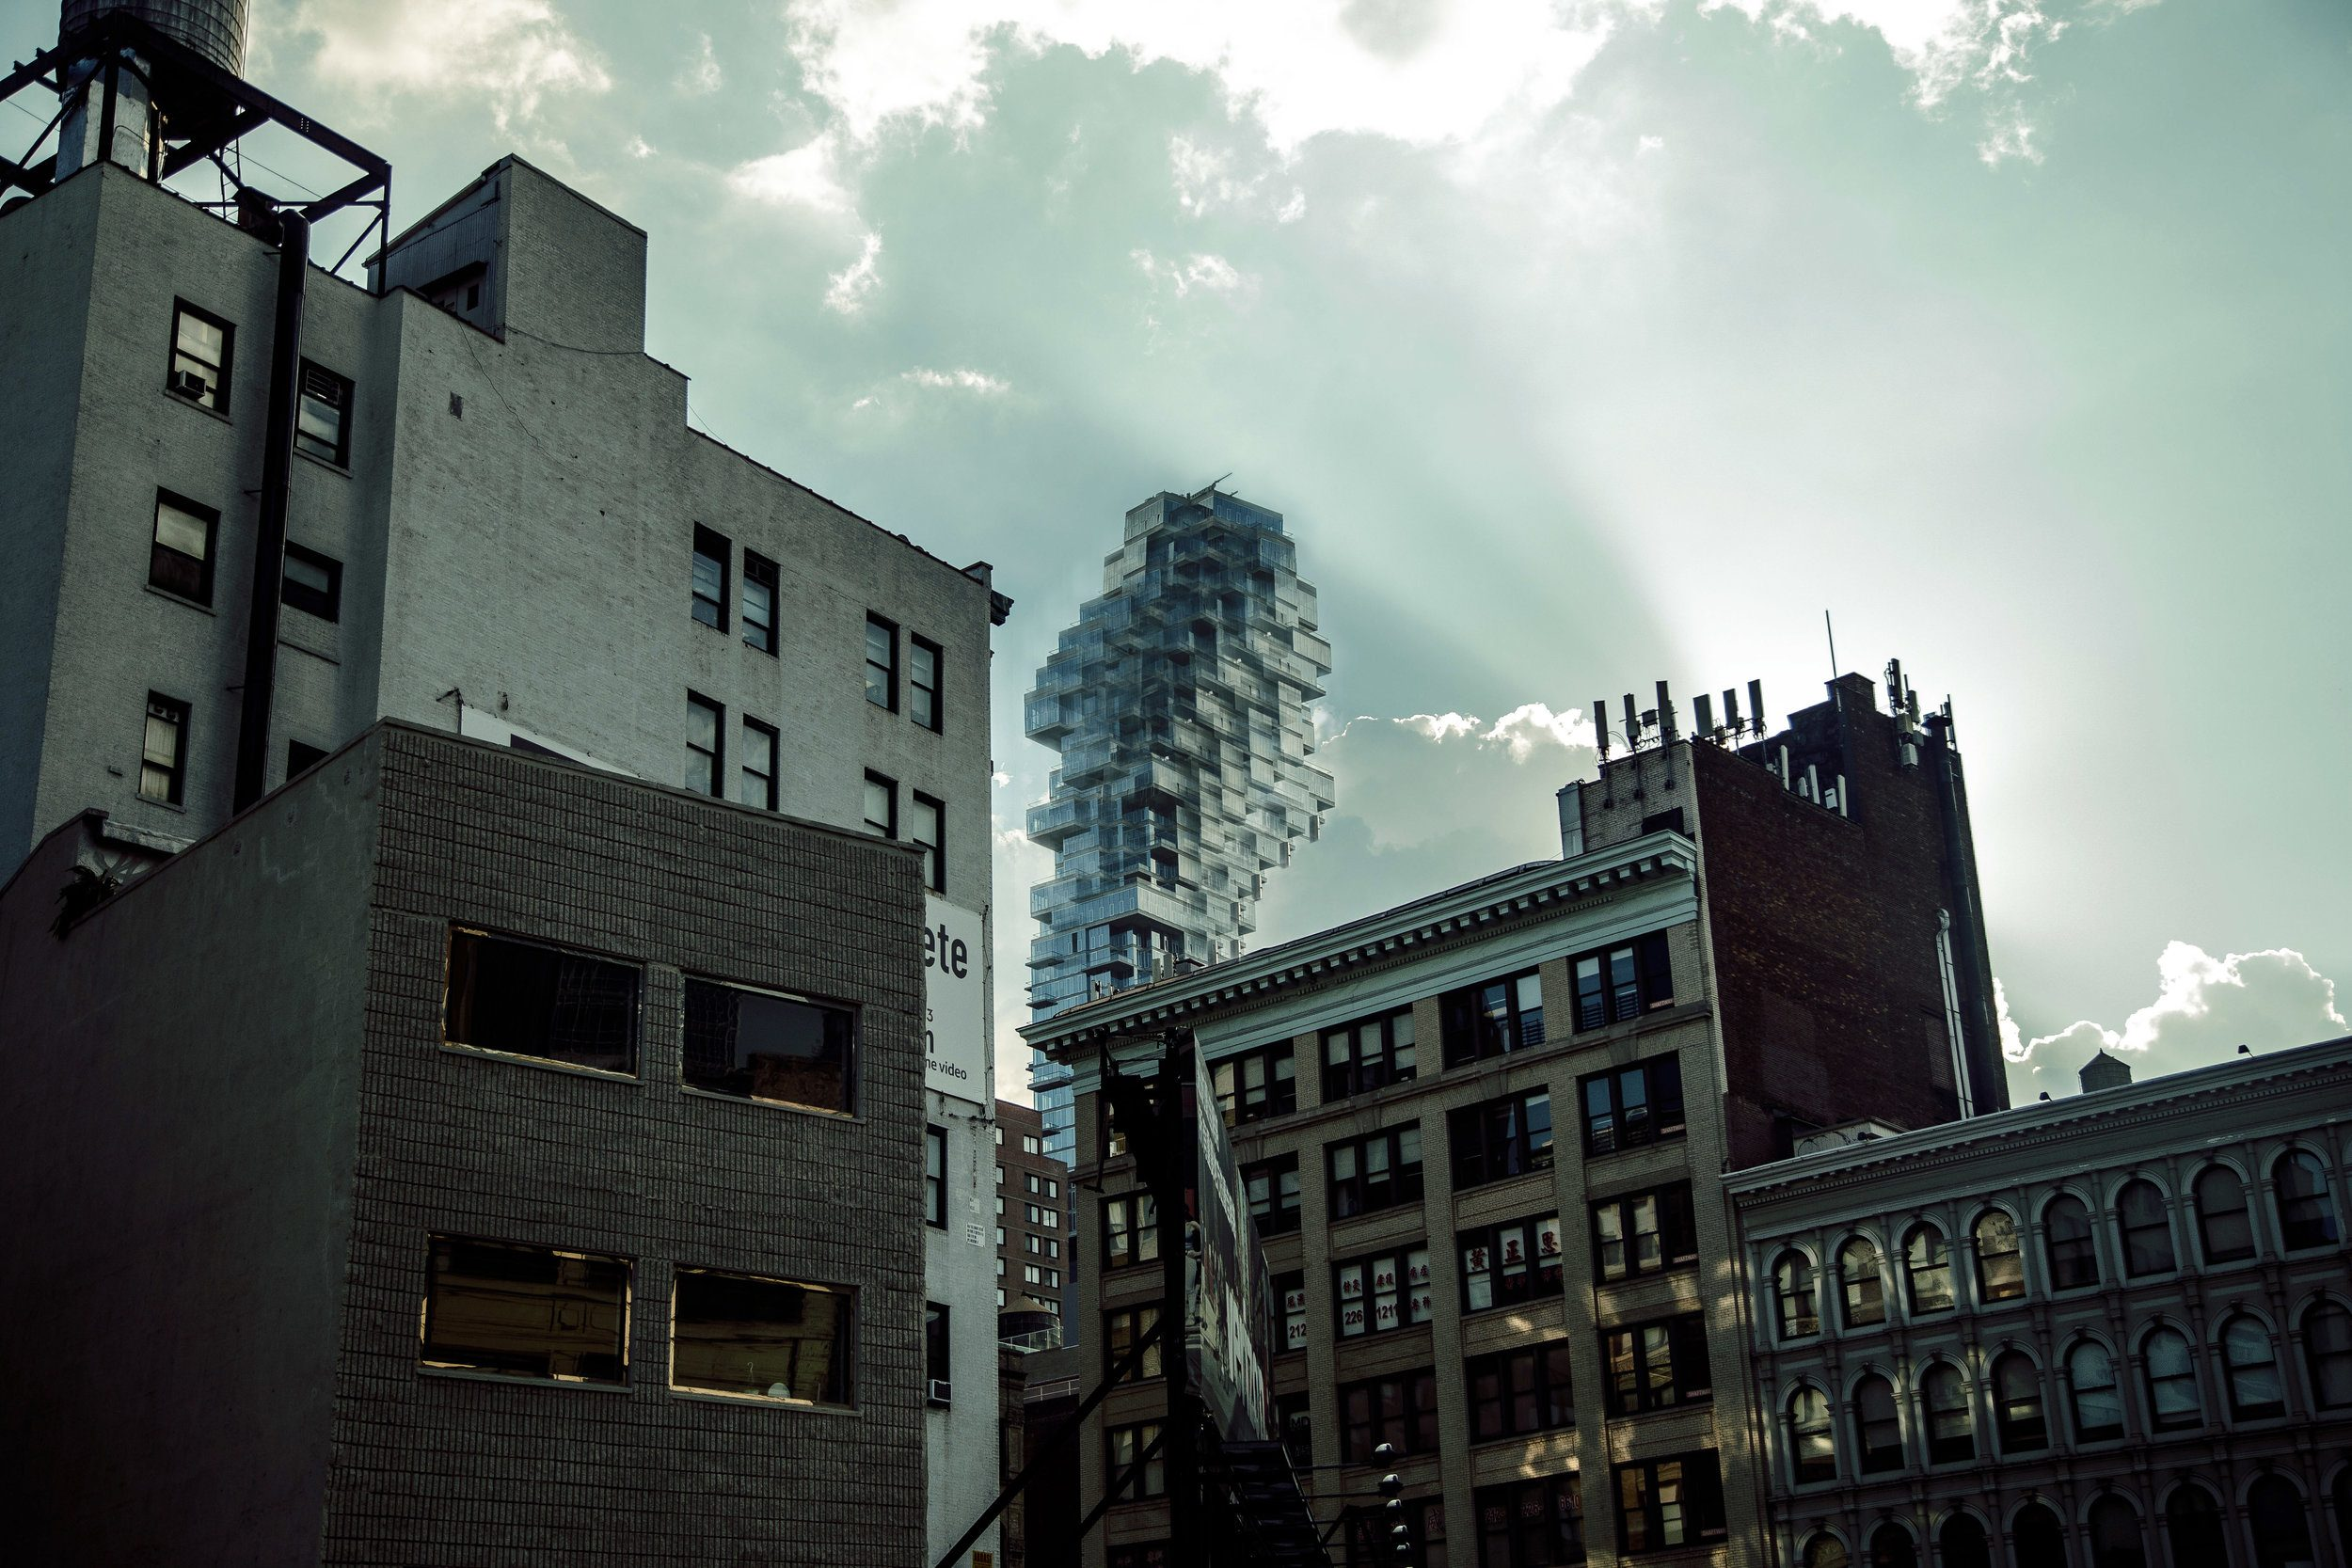 Juan Jose Egusquiza, Impossible Landscapes, NYC photography